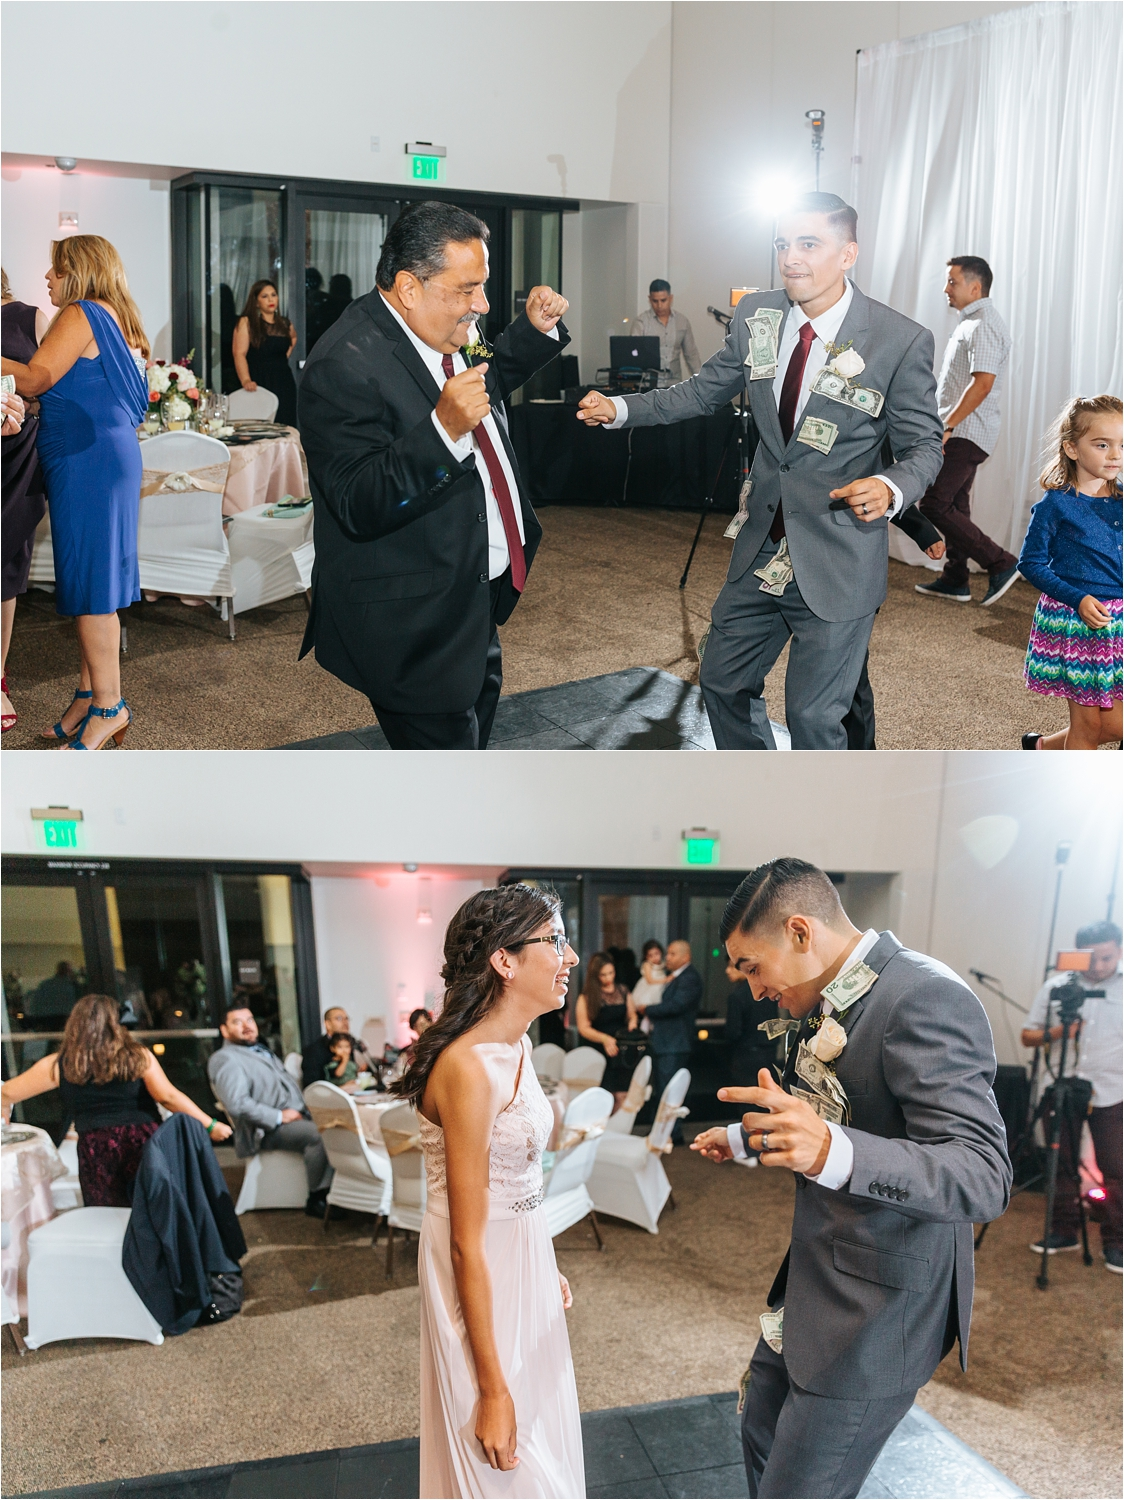 Money Dance at the wedding reception - https://brittneyhannonphotography.com